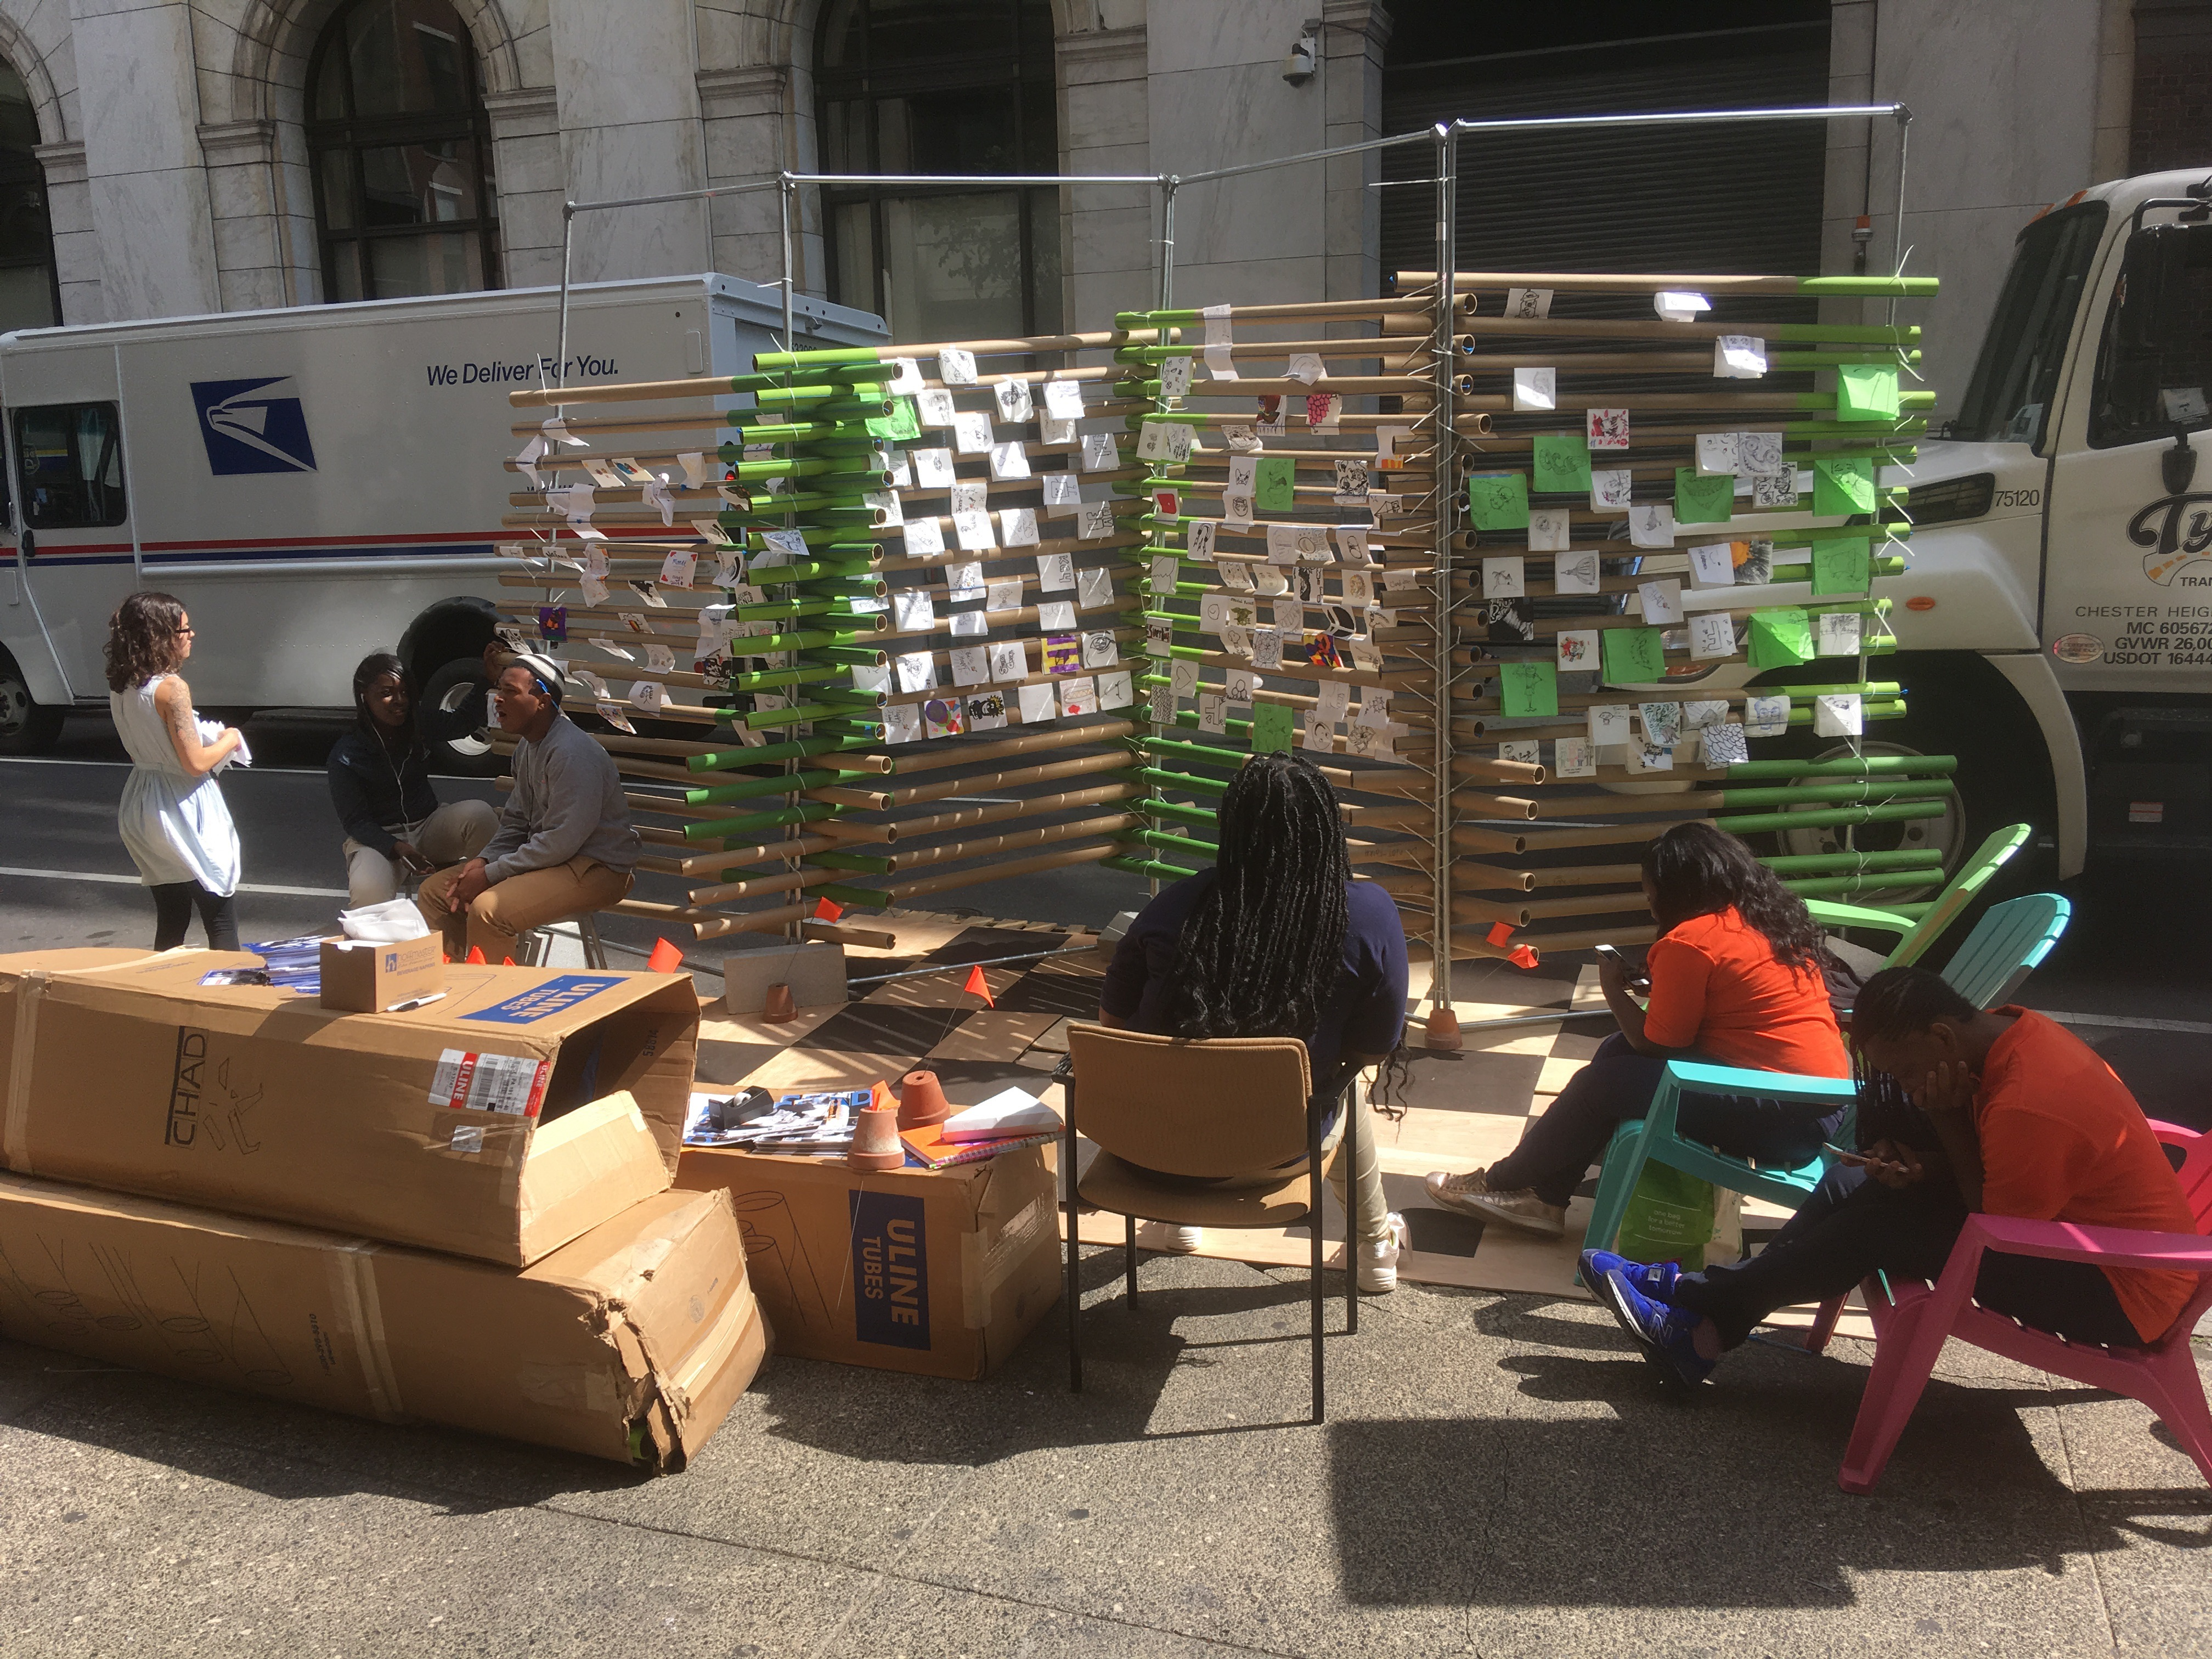 Students from Charter High school for Architecture and Design offer a participatory pop-up art gallery, asking pedestrians to offer their drawings